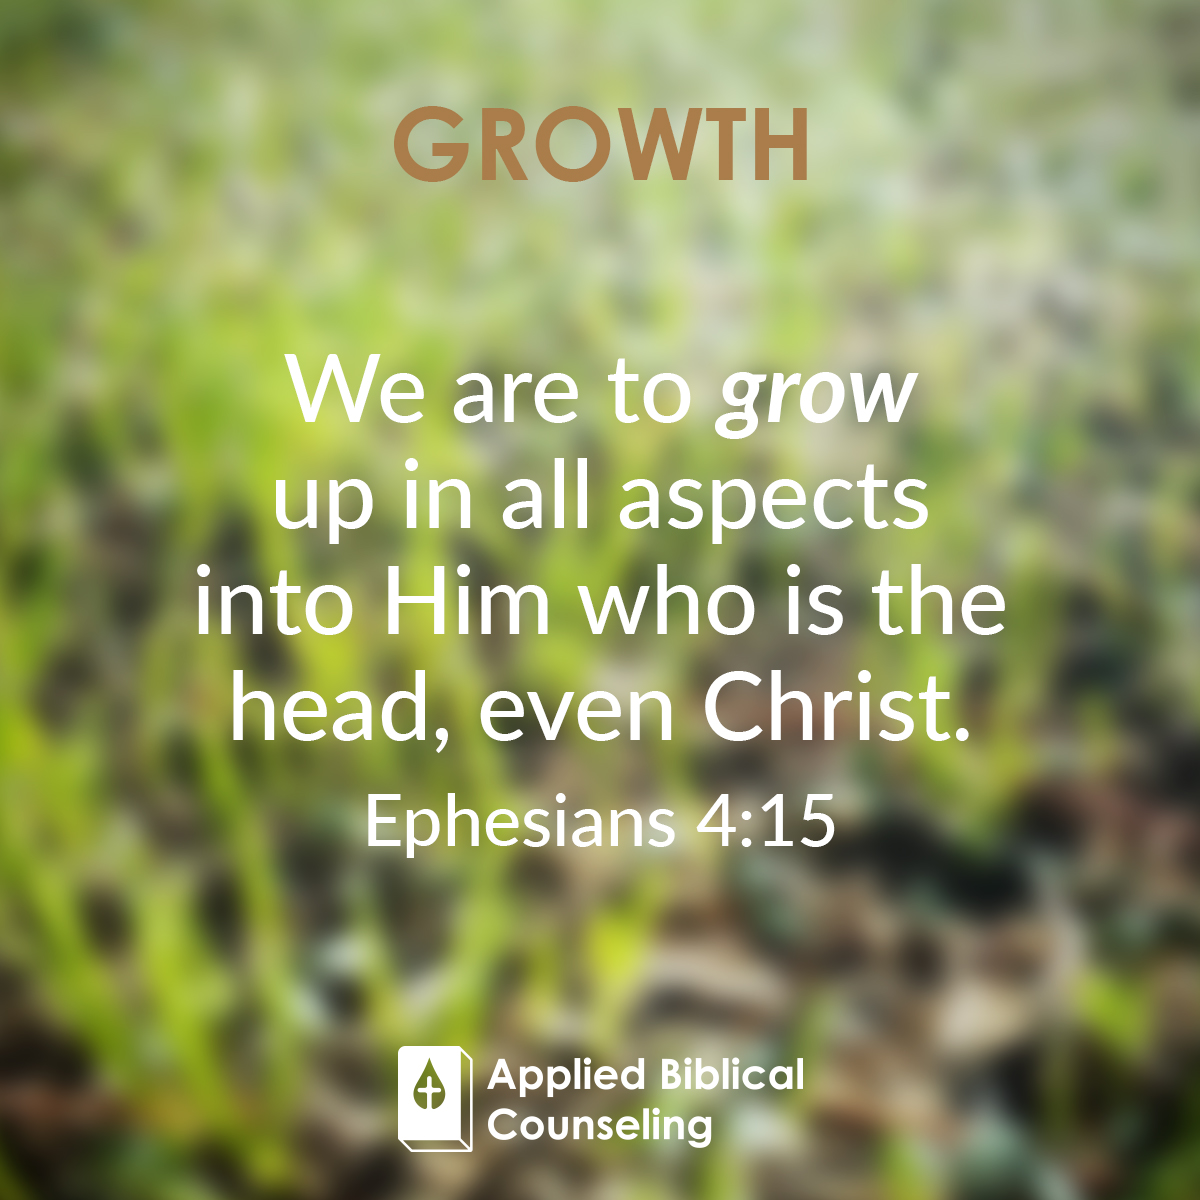 applied biblical counseling facebook w15 growth 2